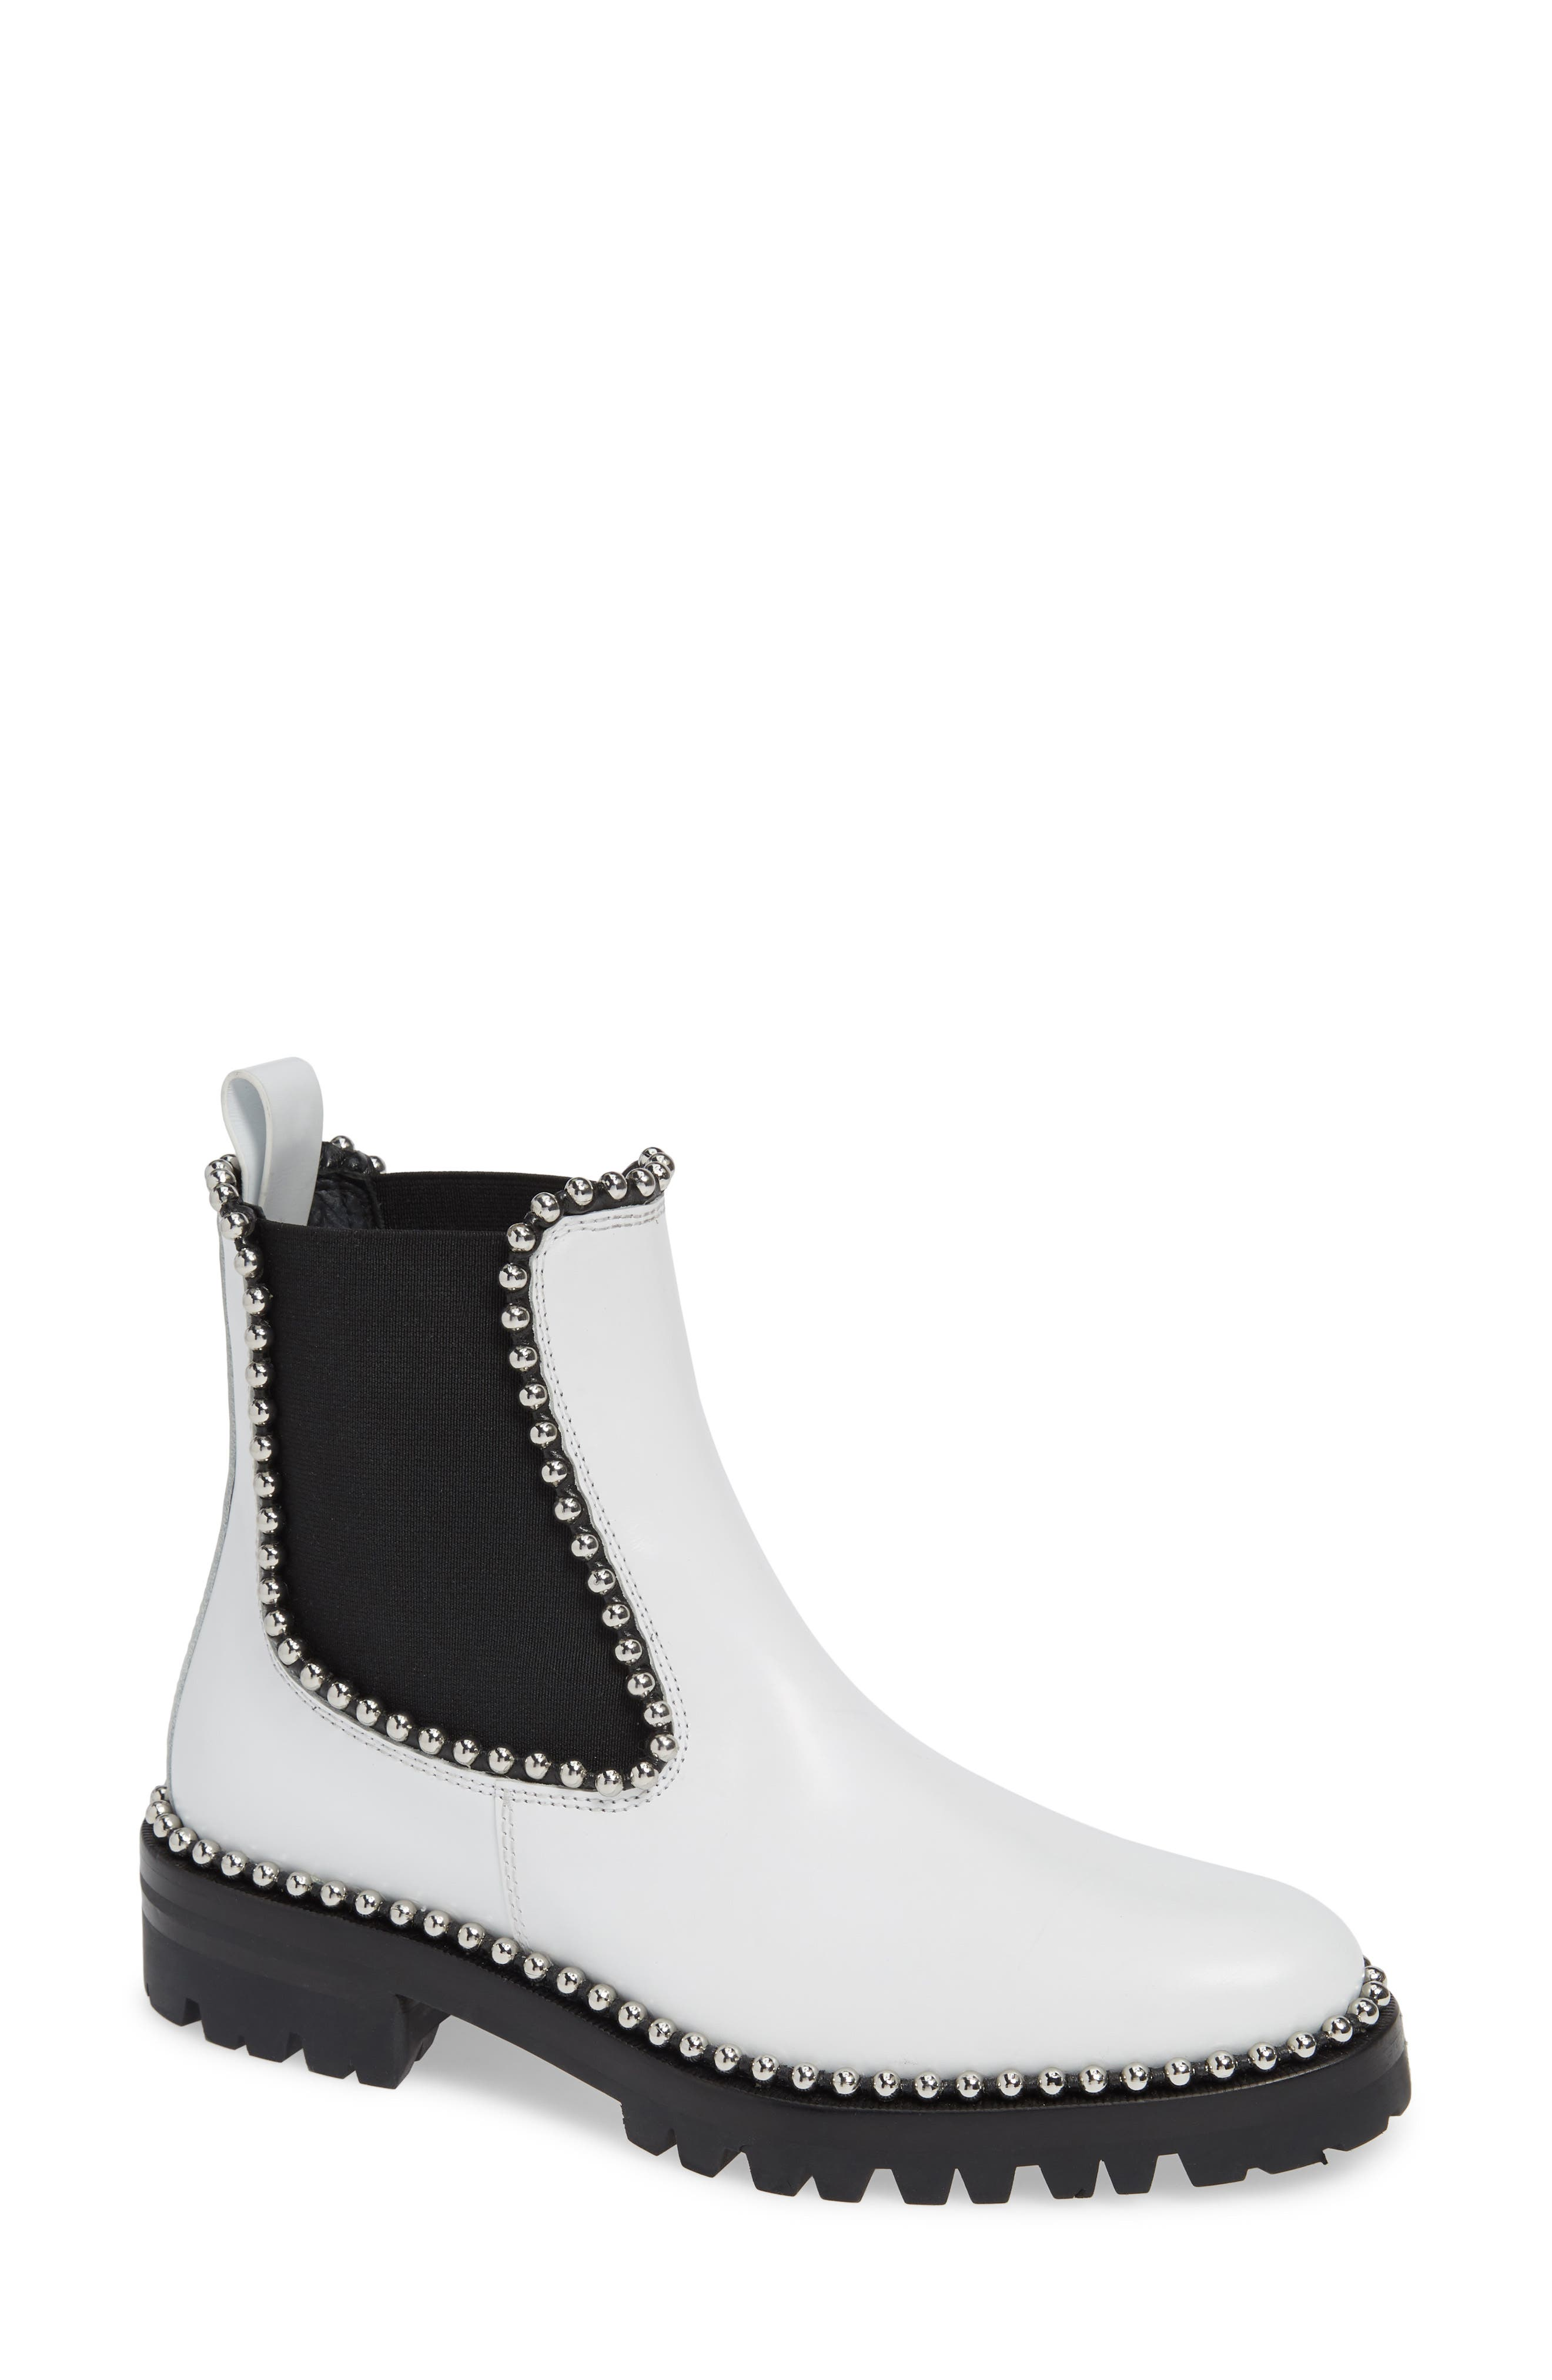 Spencer Chelsea Boot,                         Main,                         color, WHITE LEATHER